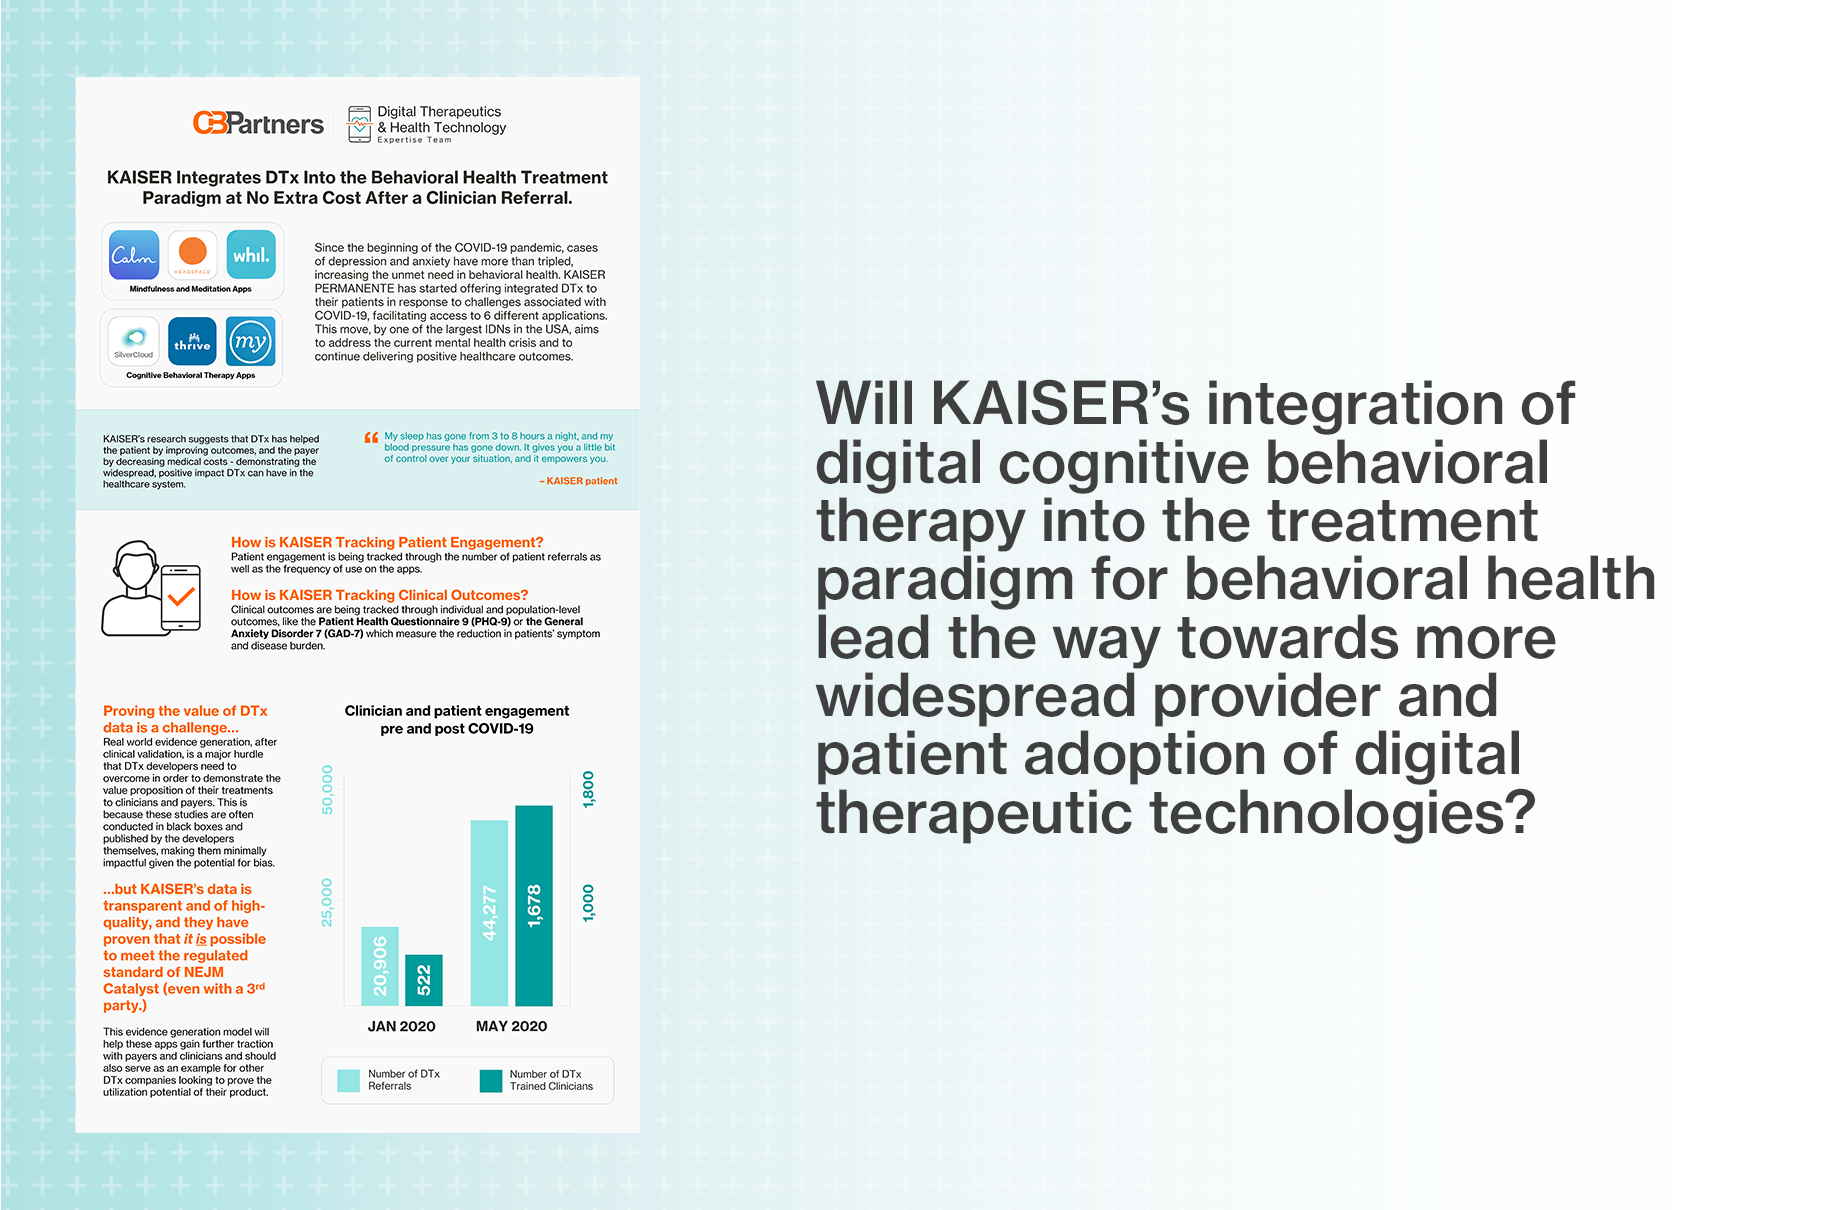 KAISER's recent systemic integration of digital health therapeutics (DTx) into the treatment paradigm for behavioral health